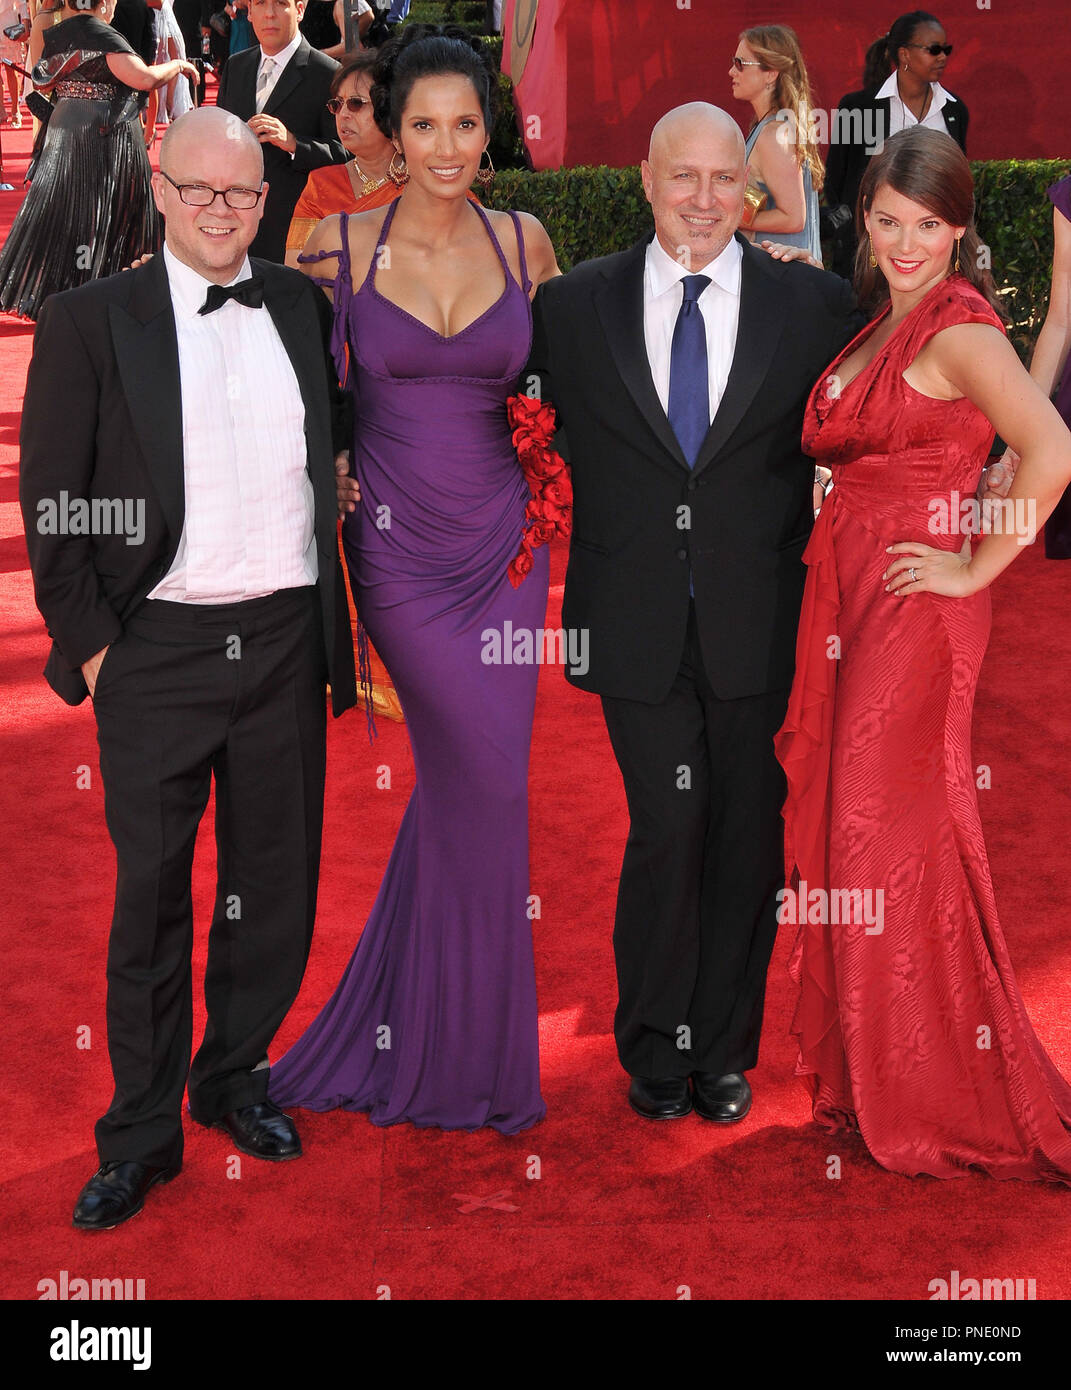 TOP CHEF Cast -Toby Young, Padma Lakshmi, Tom Colicchio & Gail Simmons at the 61st Annual Primetime Emmy Awards - Arrivals held at the Nokia Theater in Los Angeles, CA on Sunday, September 20, 2009. Photo by: PRPP / PictureLux  File Reference # Top_Chef_Cast_92009_2PRPP  For Editorial Use Only -  All Rights Reserved - Stock Image